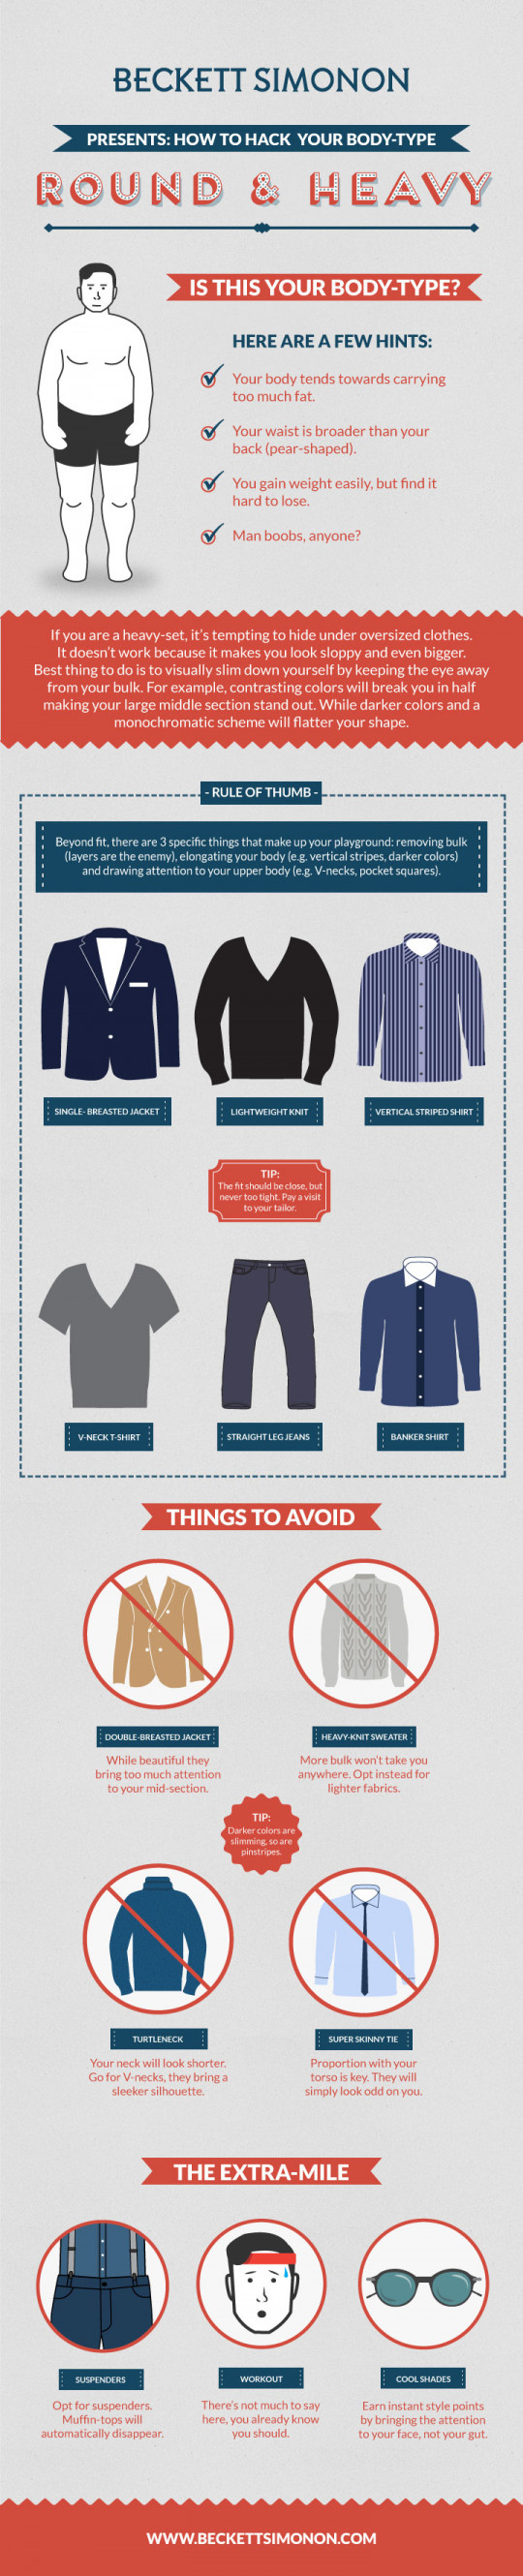 Dress for your body-type: Style tips for fat men.